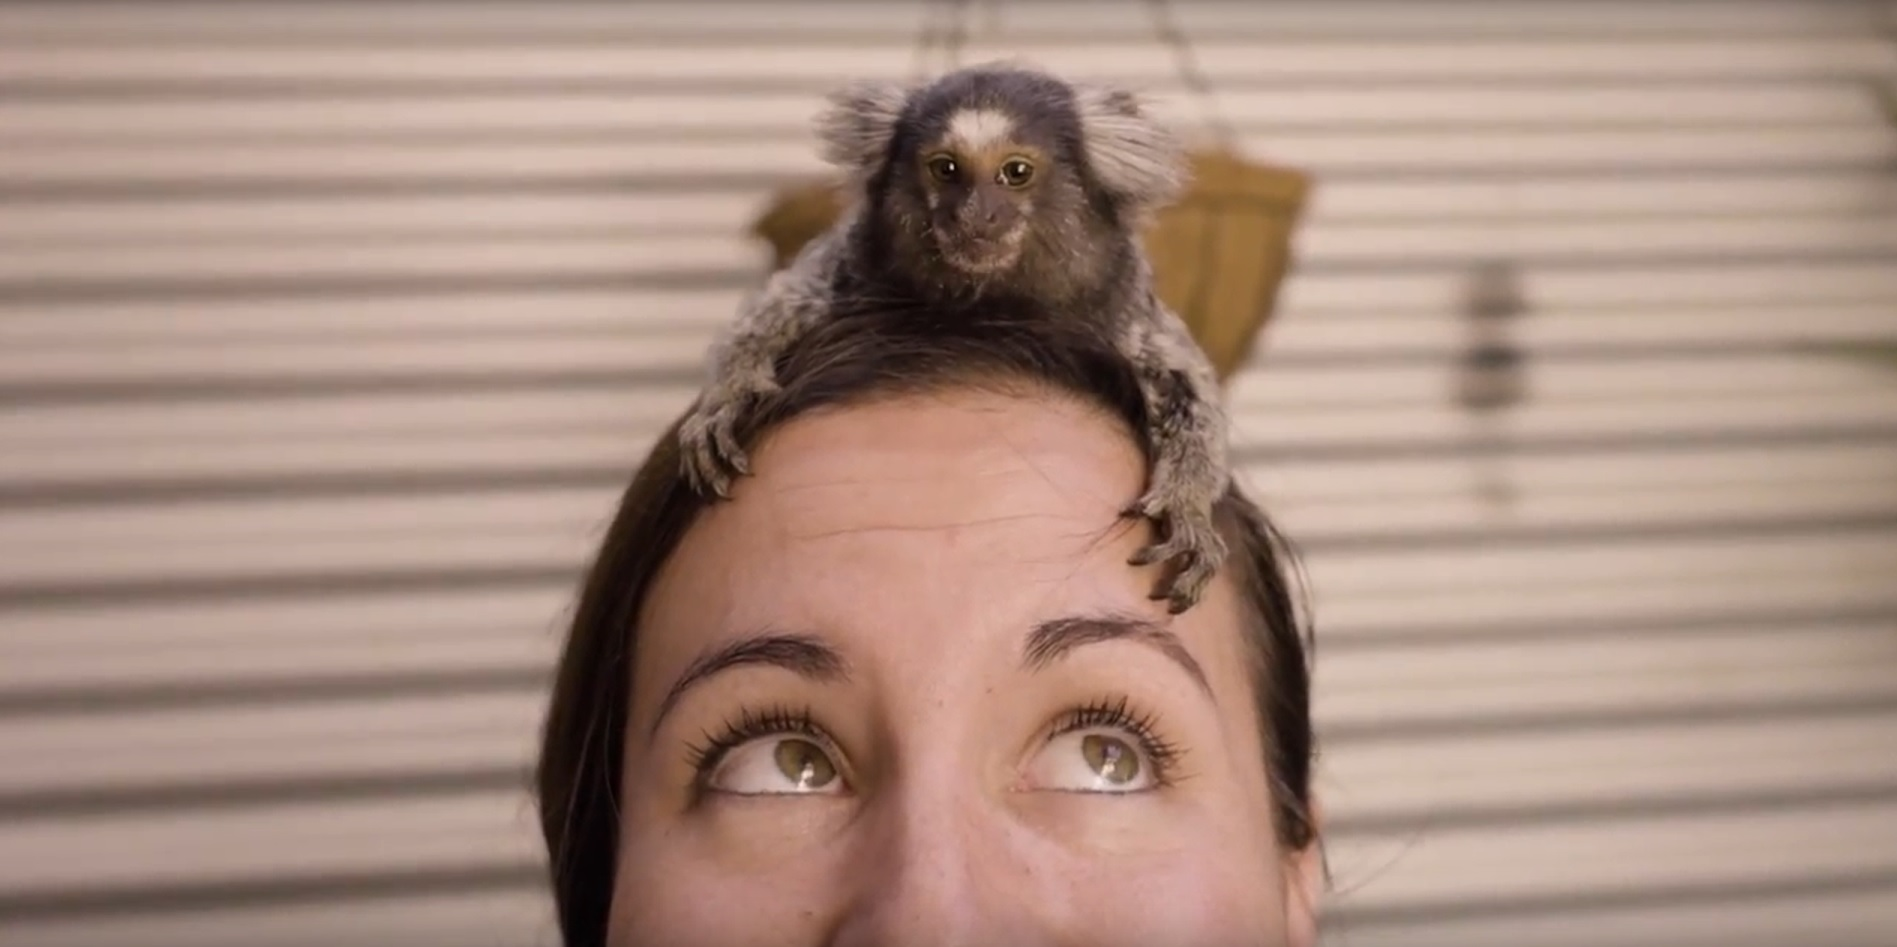 Miguel, a common marmoset, climbs on top of a zoo keeper's head